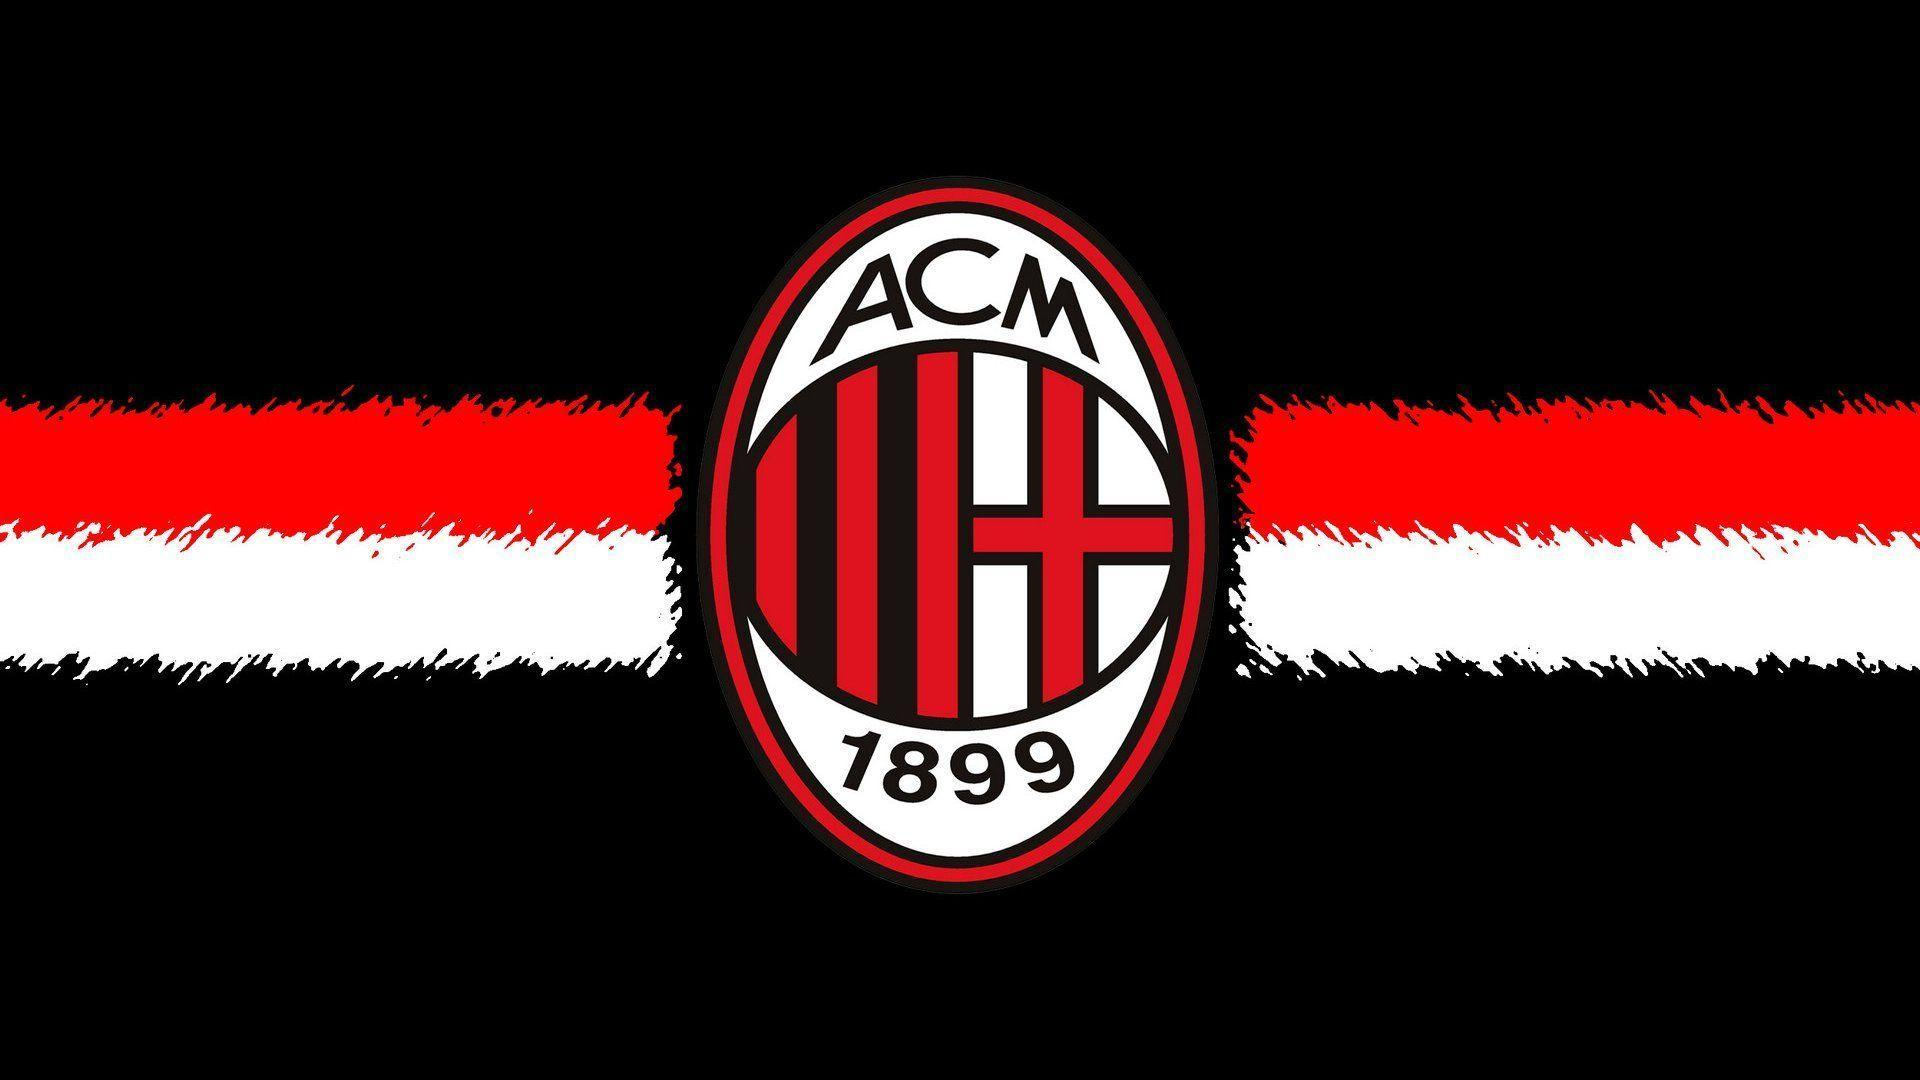 Logo Ac Milan Wallpapers 2015 Wallpaper Cave